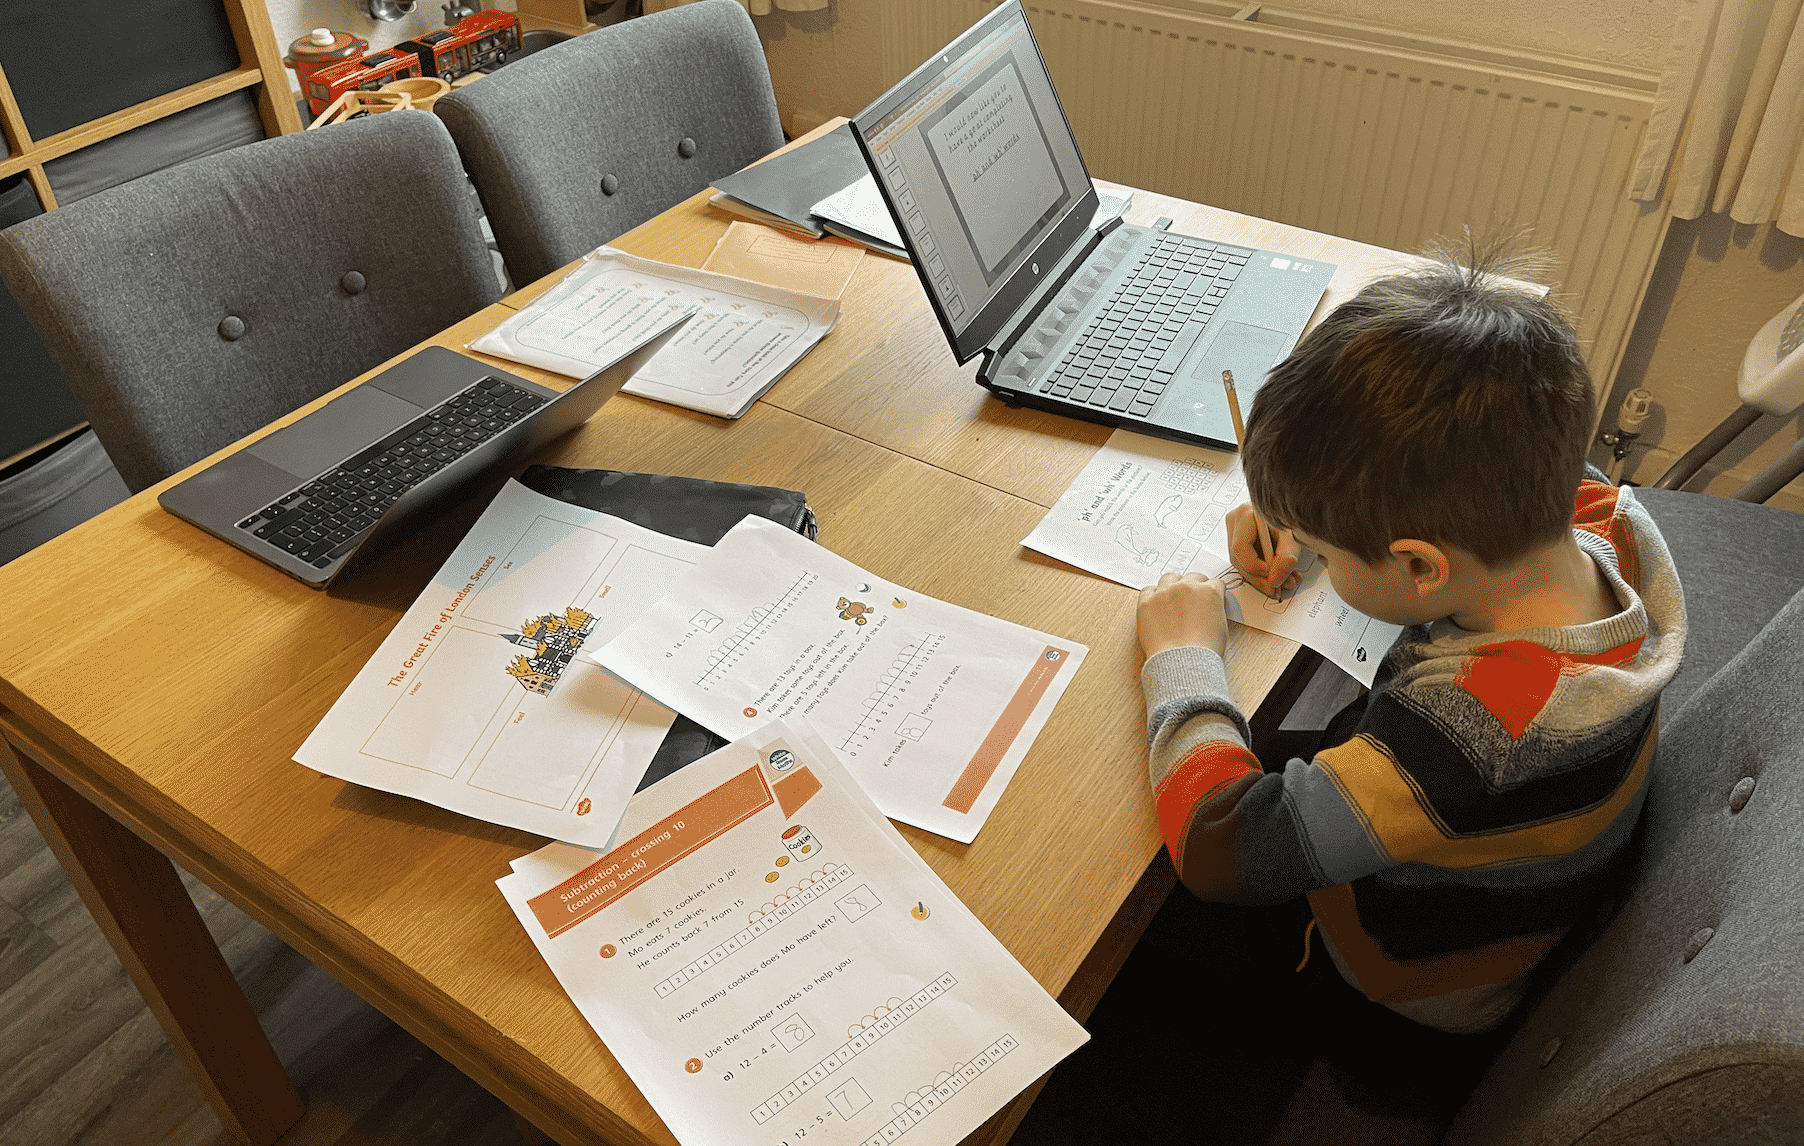 Home schooling and working from home